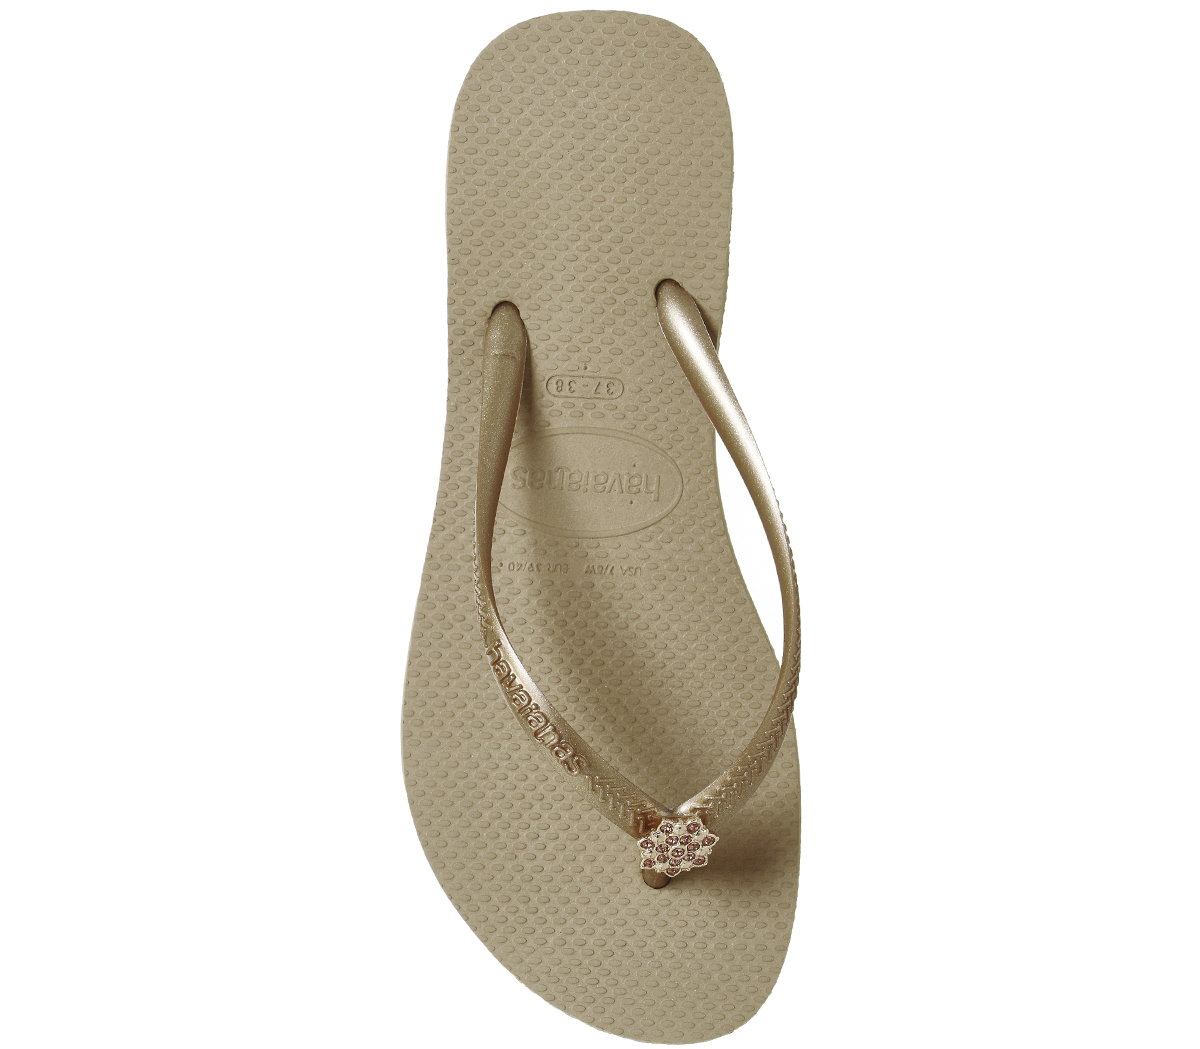 443303bb7863d4 Womens Havaianas Slim Crystal Poem Flip Flop Rose Gold Sandals